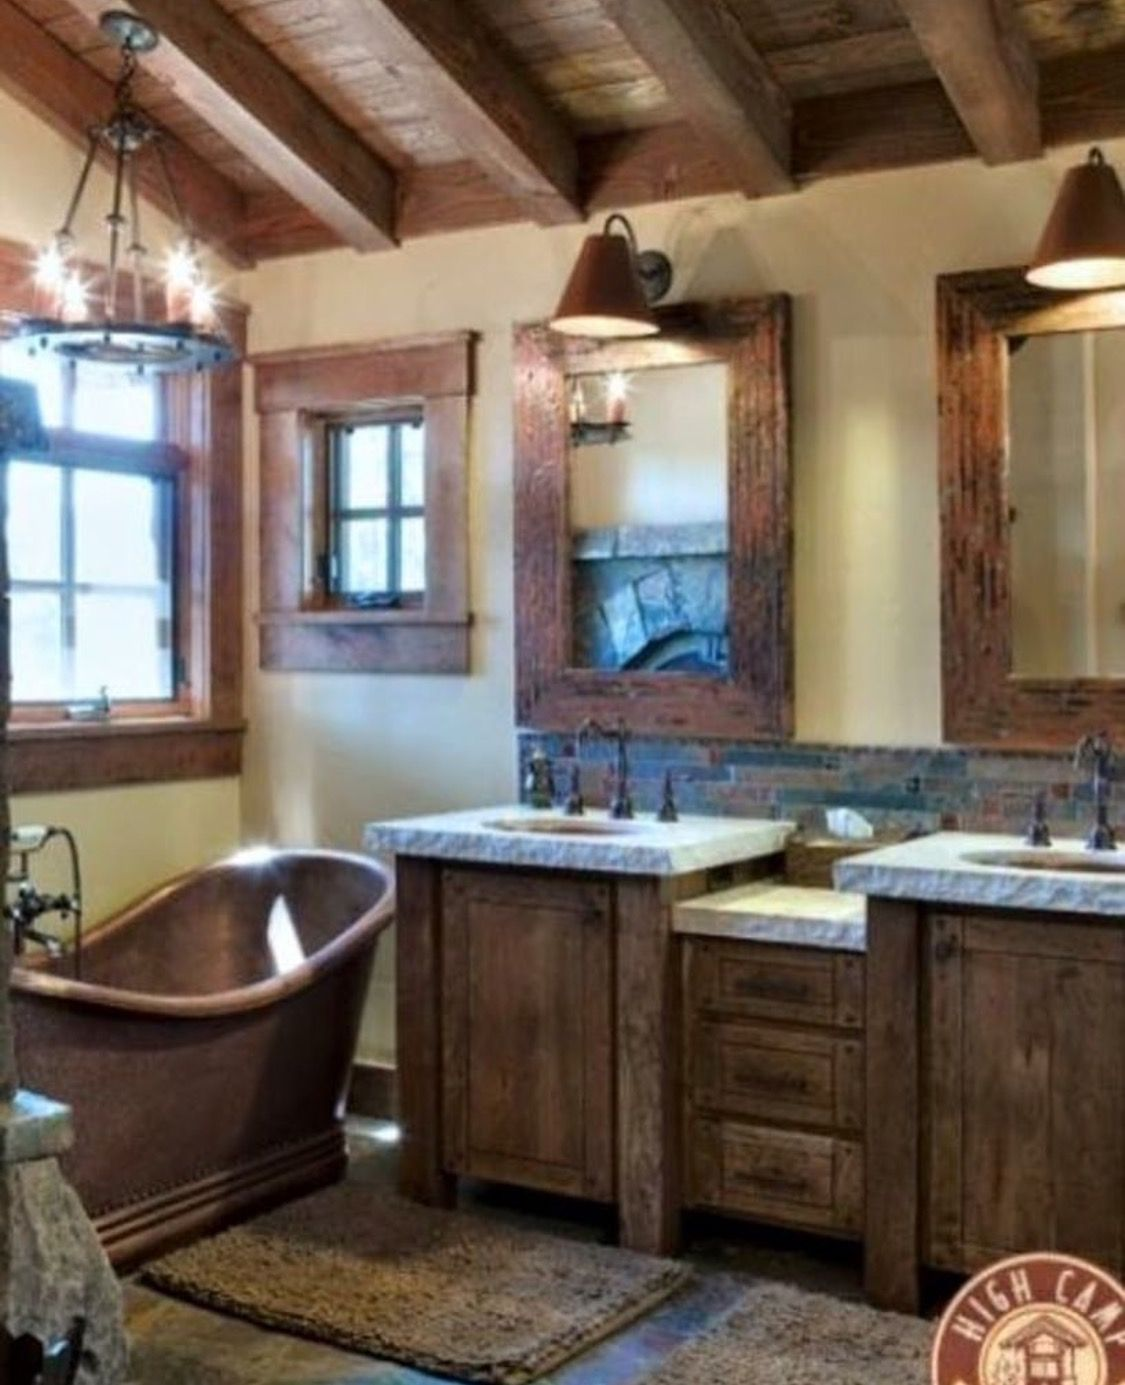 Best Kitchen Gallery: Pin By Catherine Robertson On Farmhouse Styles Pinterest Cabin of Rustic Bathroom Design  on rachelxblog.com